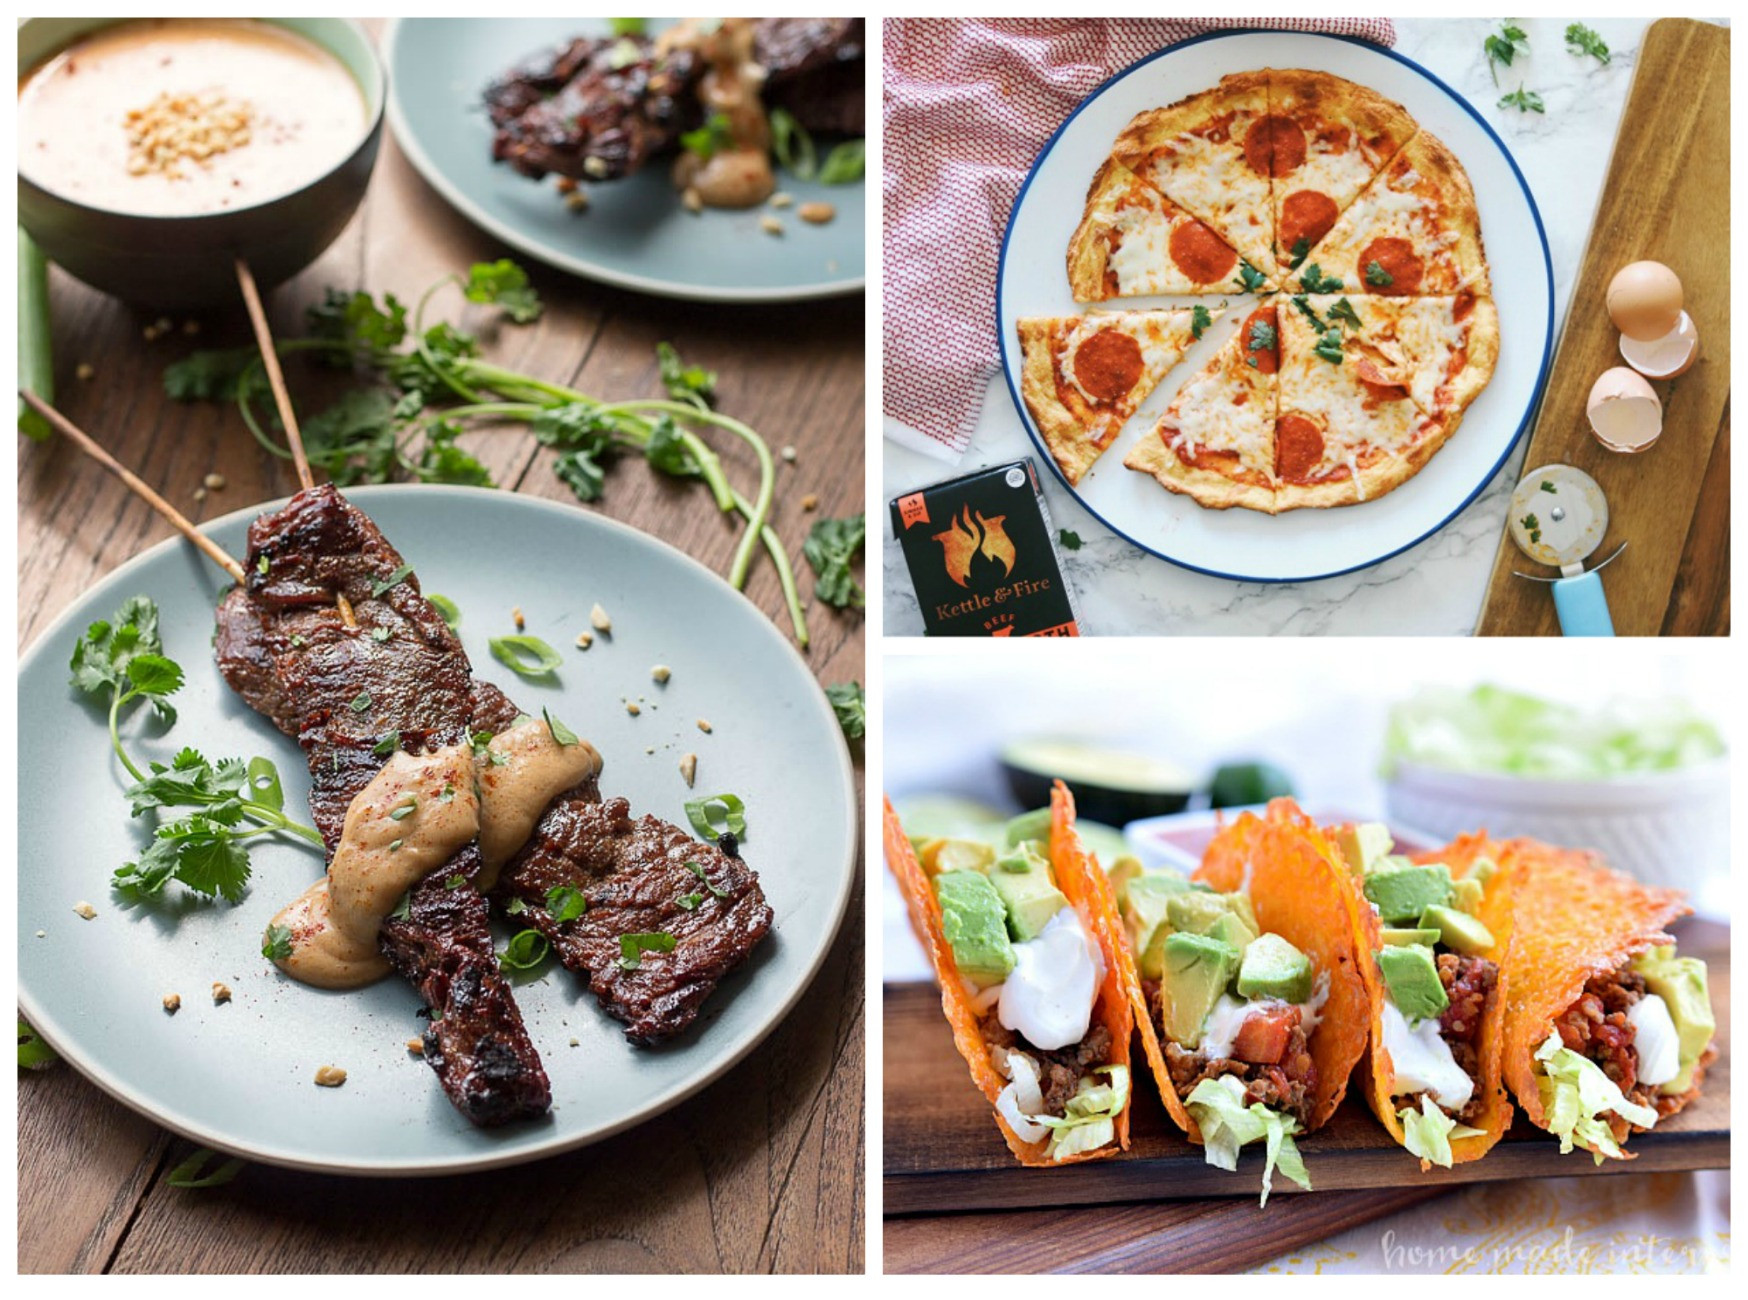 Keto Dinner Recipe  15 Easy Keto Dinner Recipes That ll Turn You into a Fat